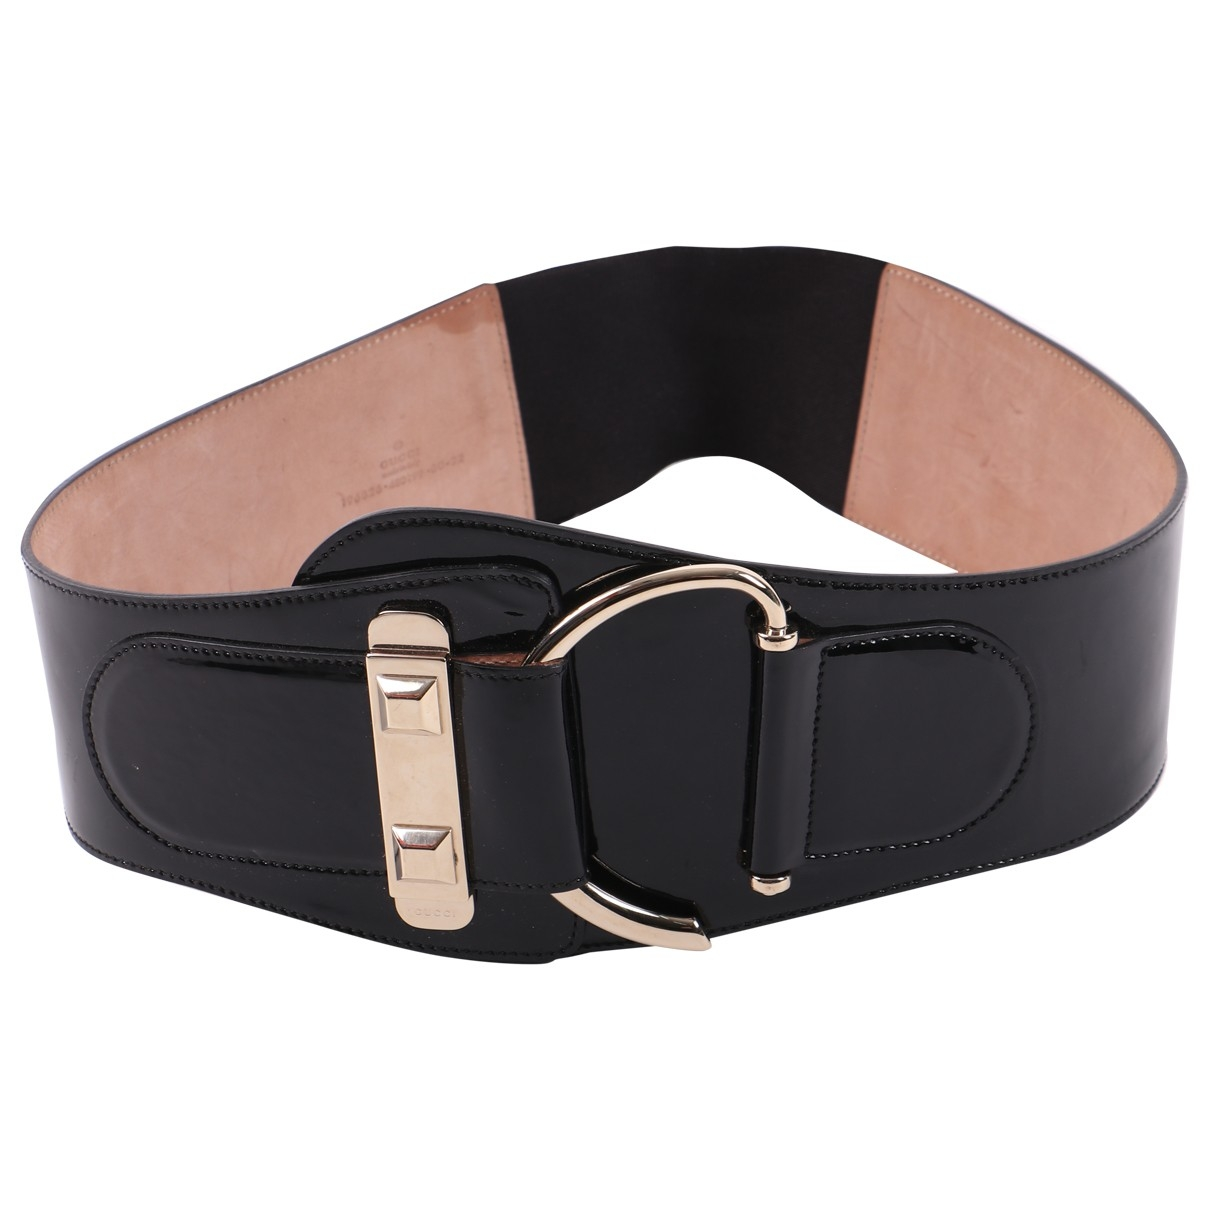 Gucci \N Black Patent leather belt for Women 85 cm